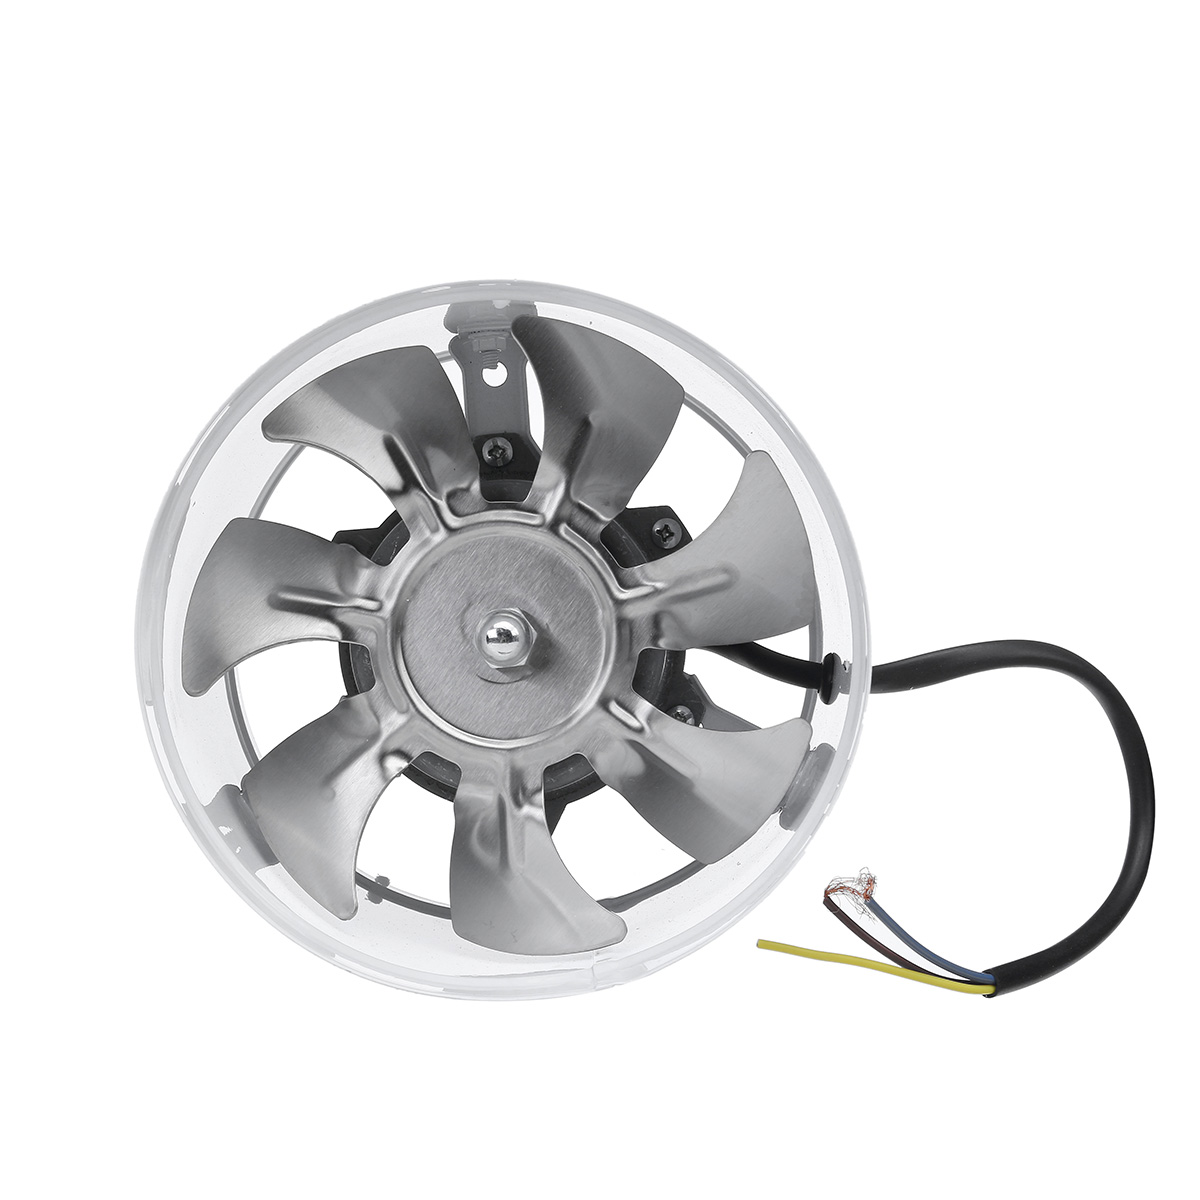 40W 6Inch Inline Duct Fan Booster 150mm Exhaust Blower Air Cooling Vent Ventilation Fan 1080m/ h